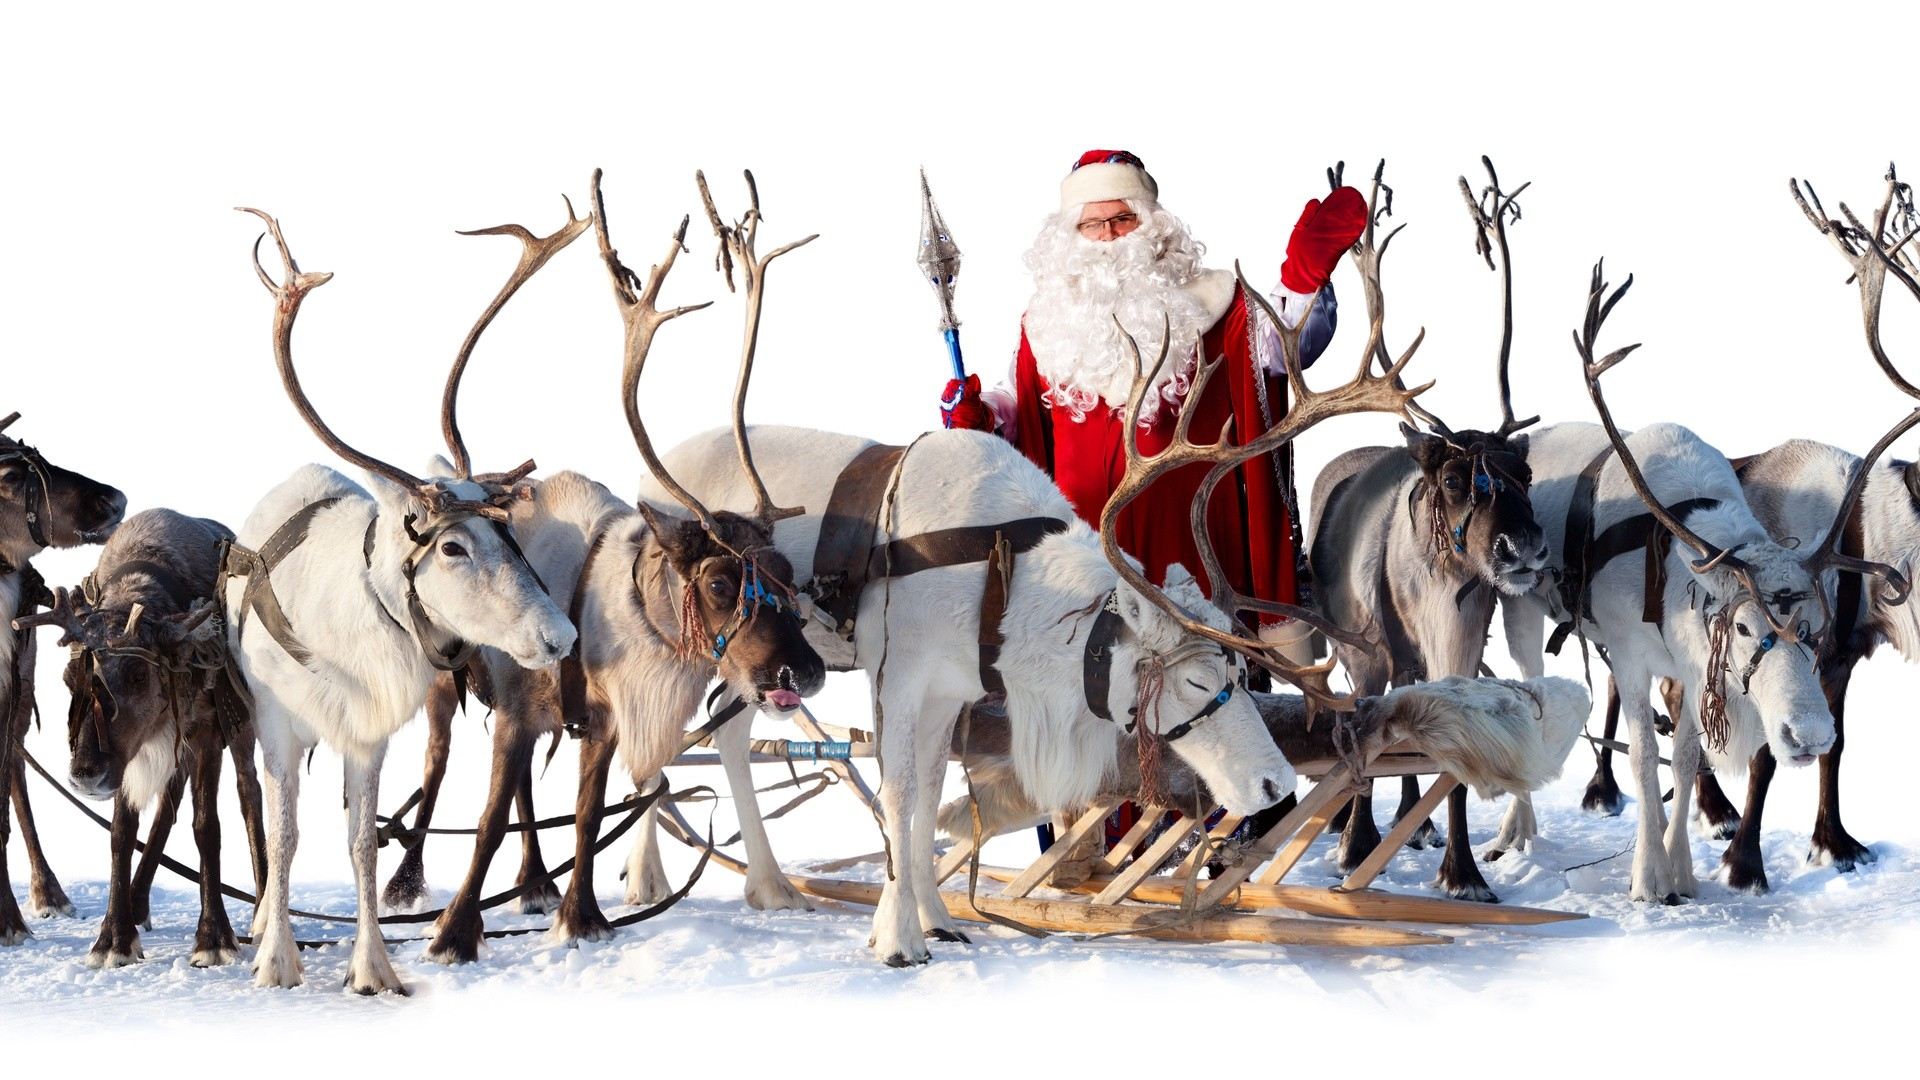 Reindeer High Quality